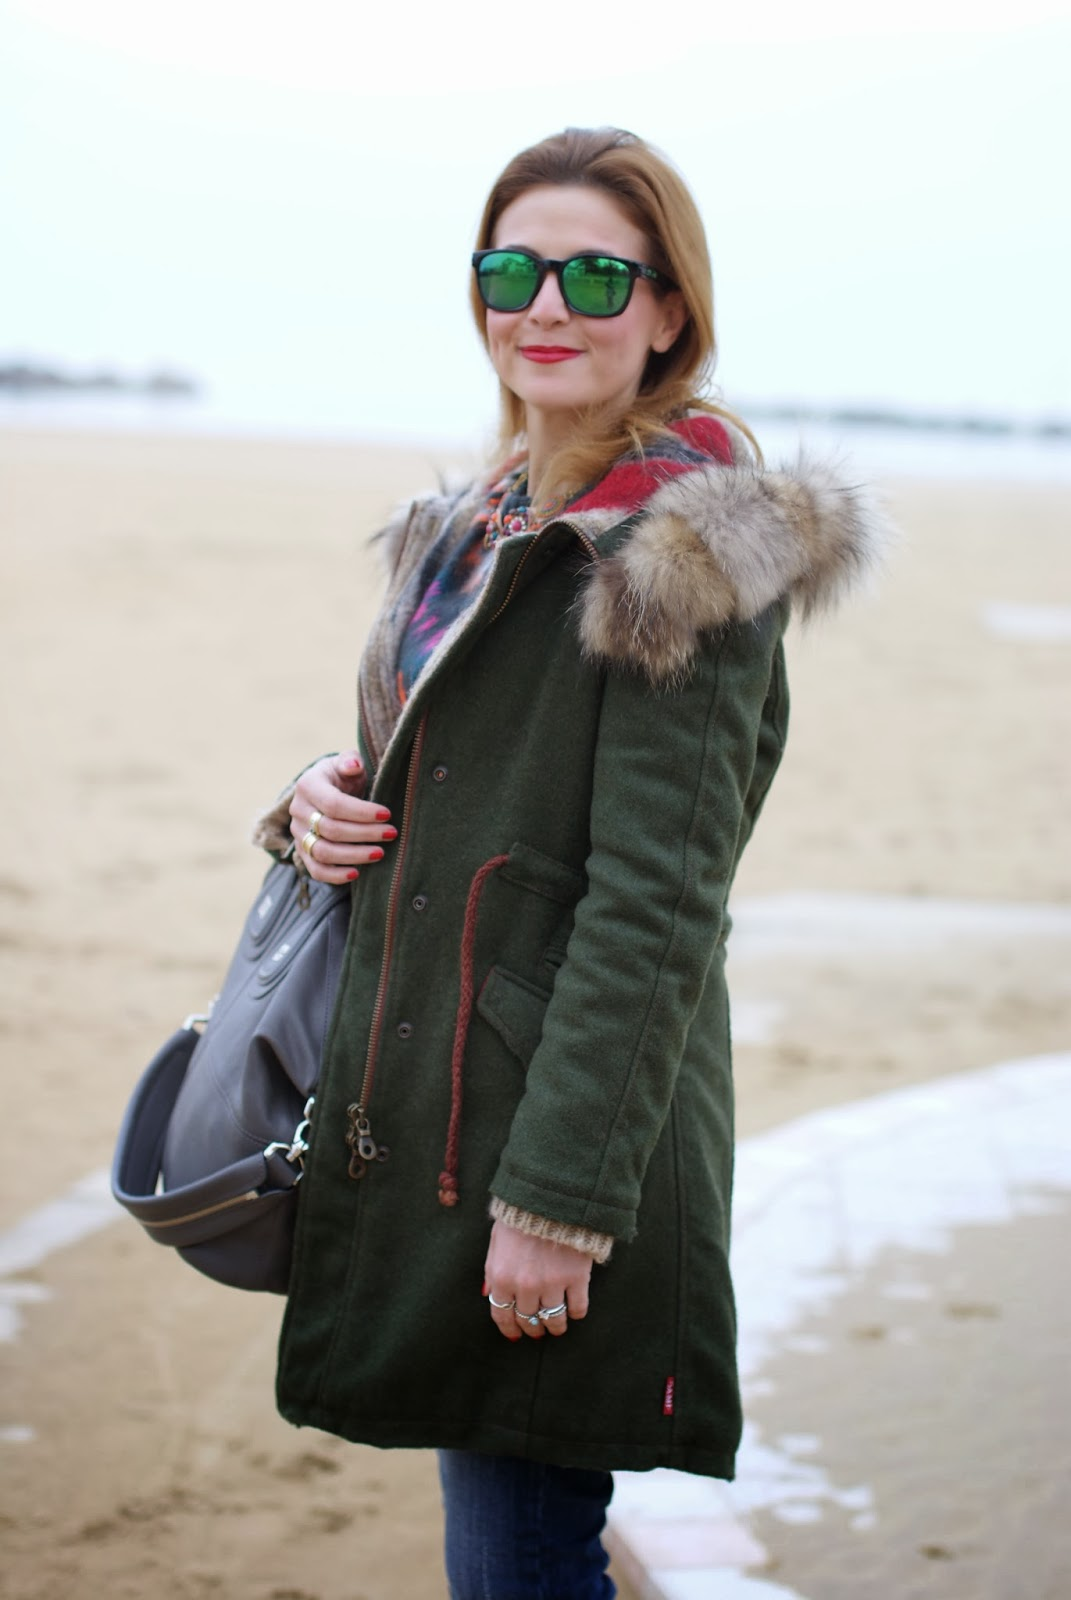 Gamp parka, Givenchy Nightingale bag, Oakley green sunglasses, Fashion and Cookies, fashion blogger